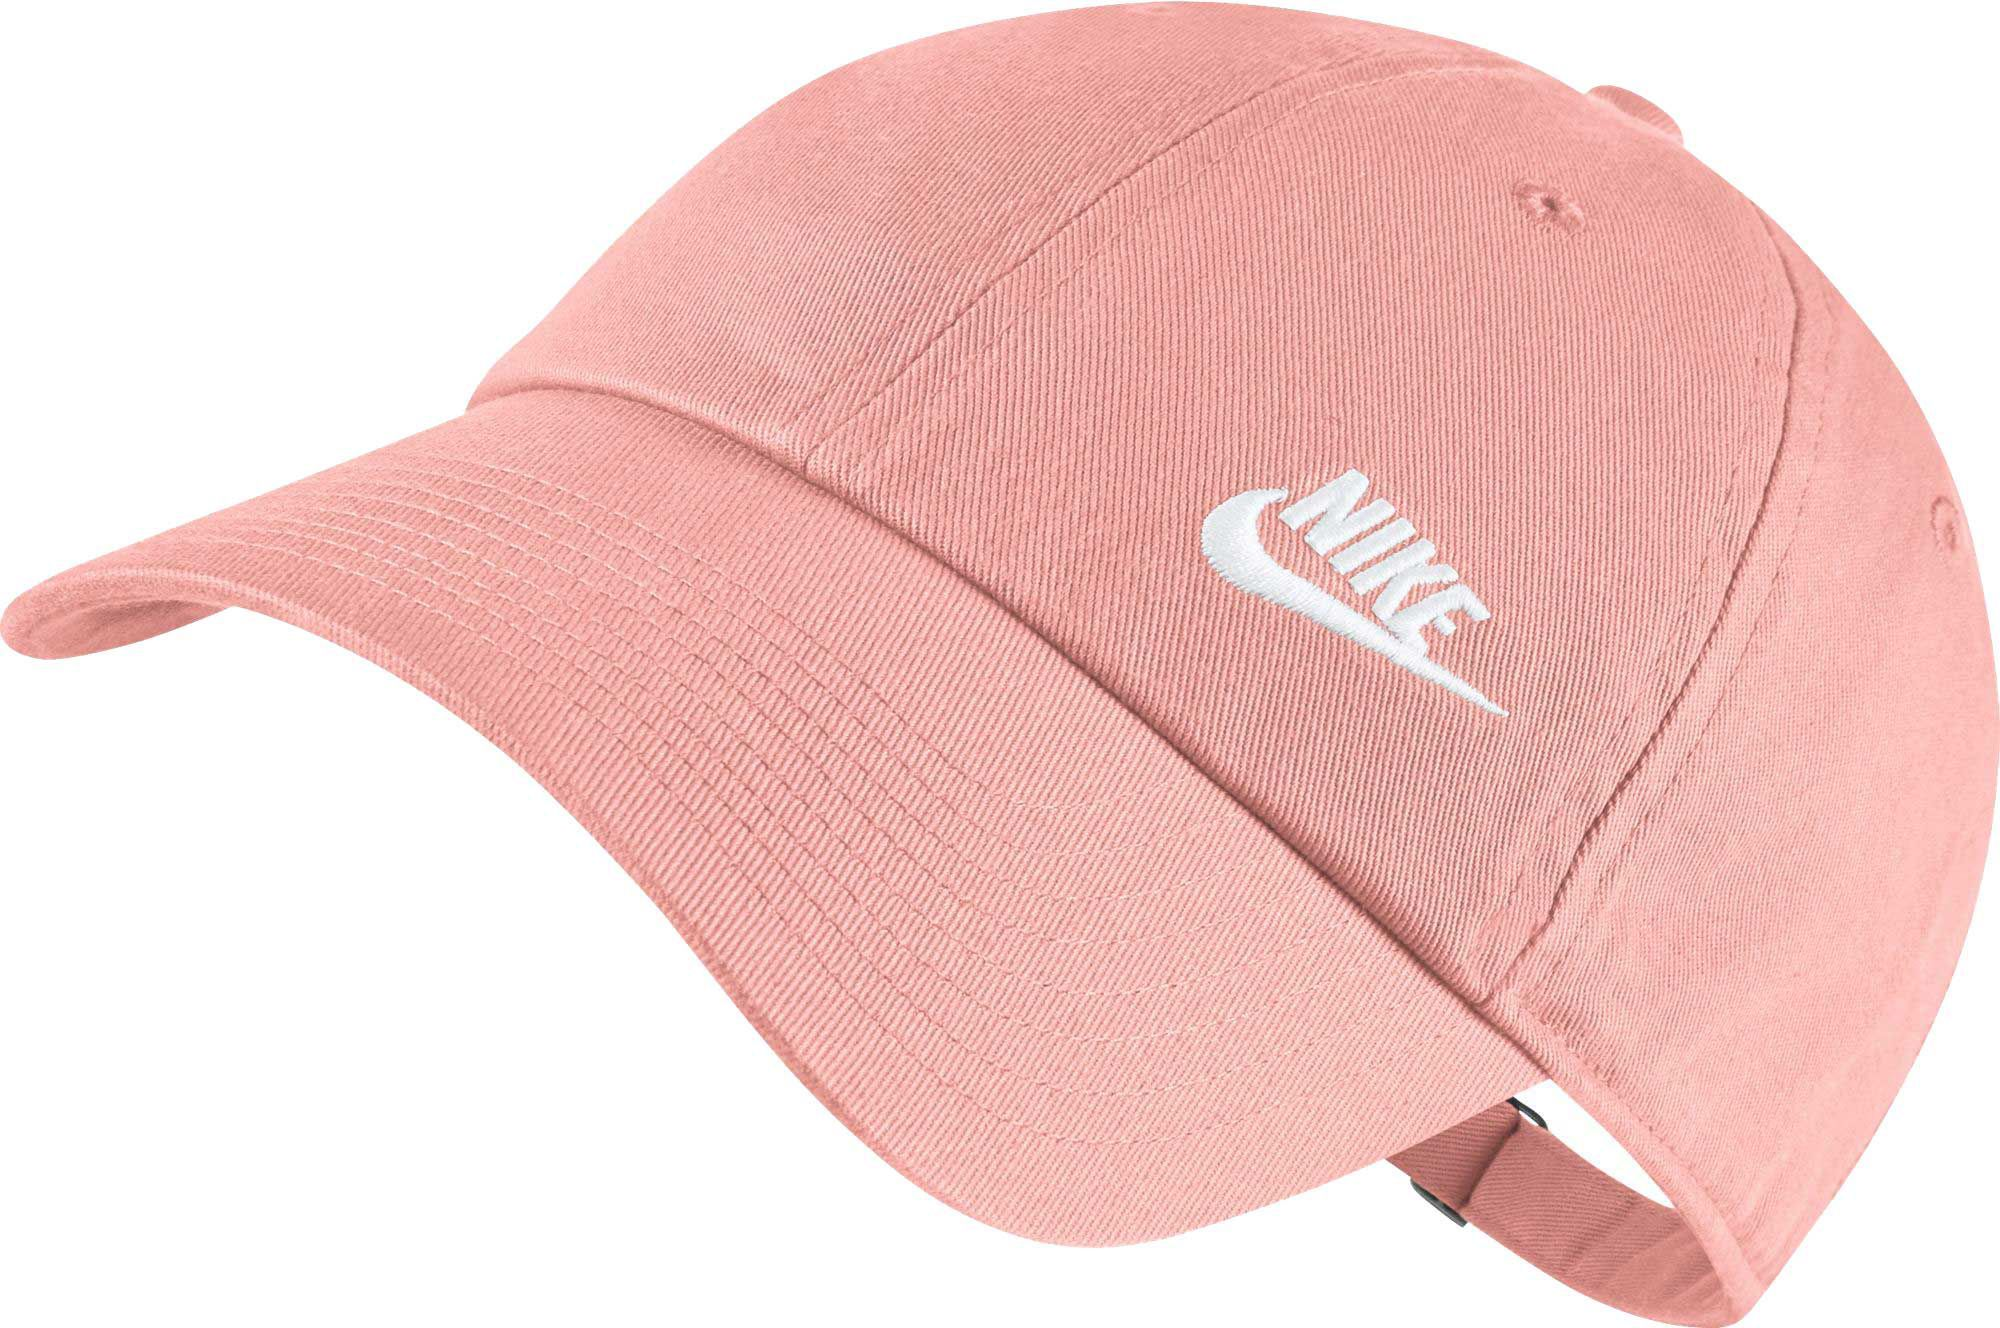 38b301b2 Nike Women's Twill H86 Adjustable Hat in 2019 | Products | Adidas ...